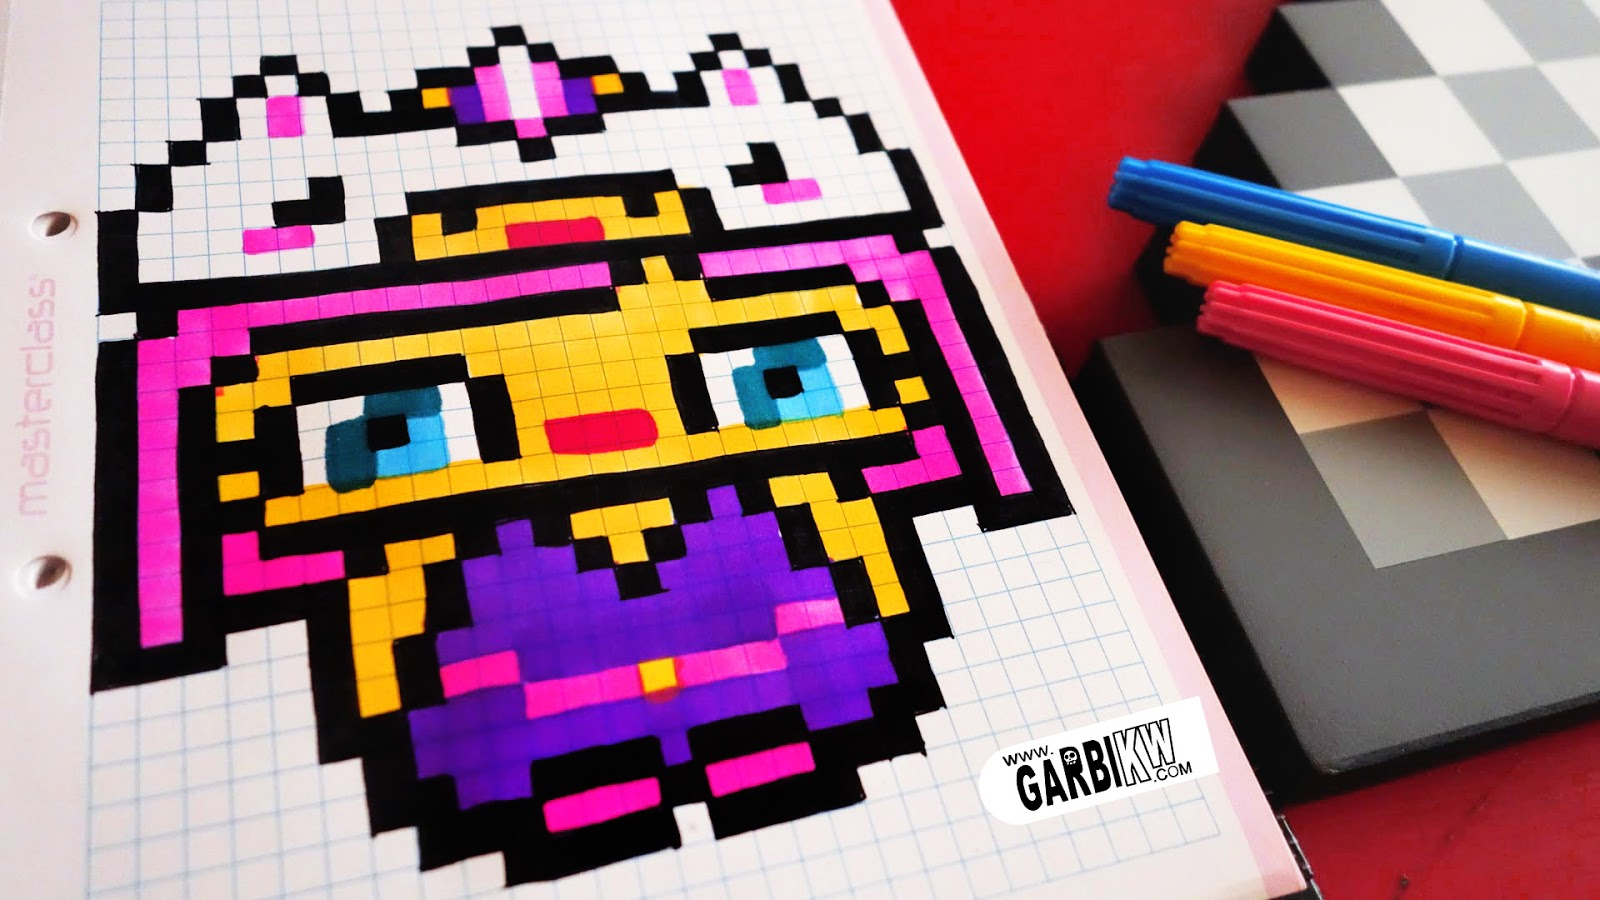 Drawn pixel art garbi kw 2016 Art Art: To Pixel